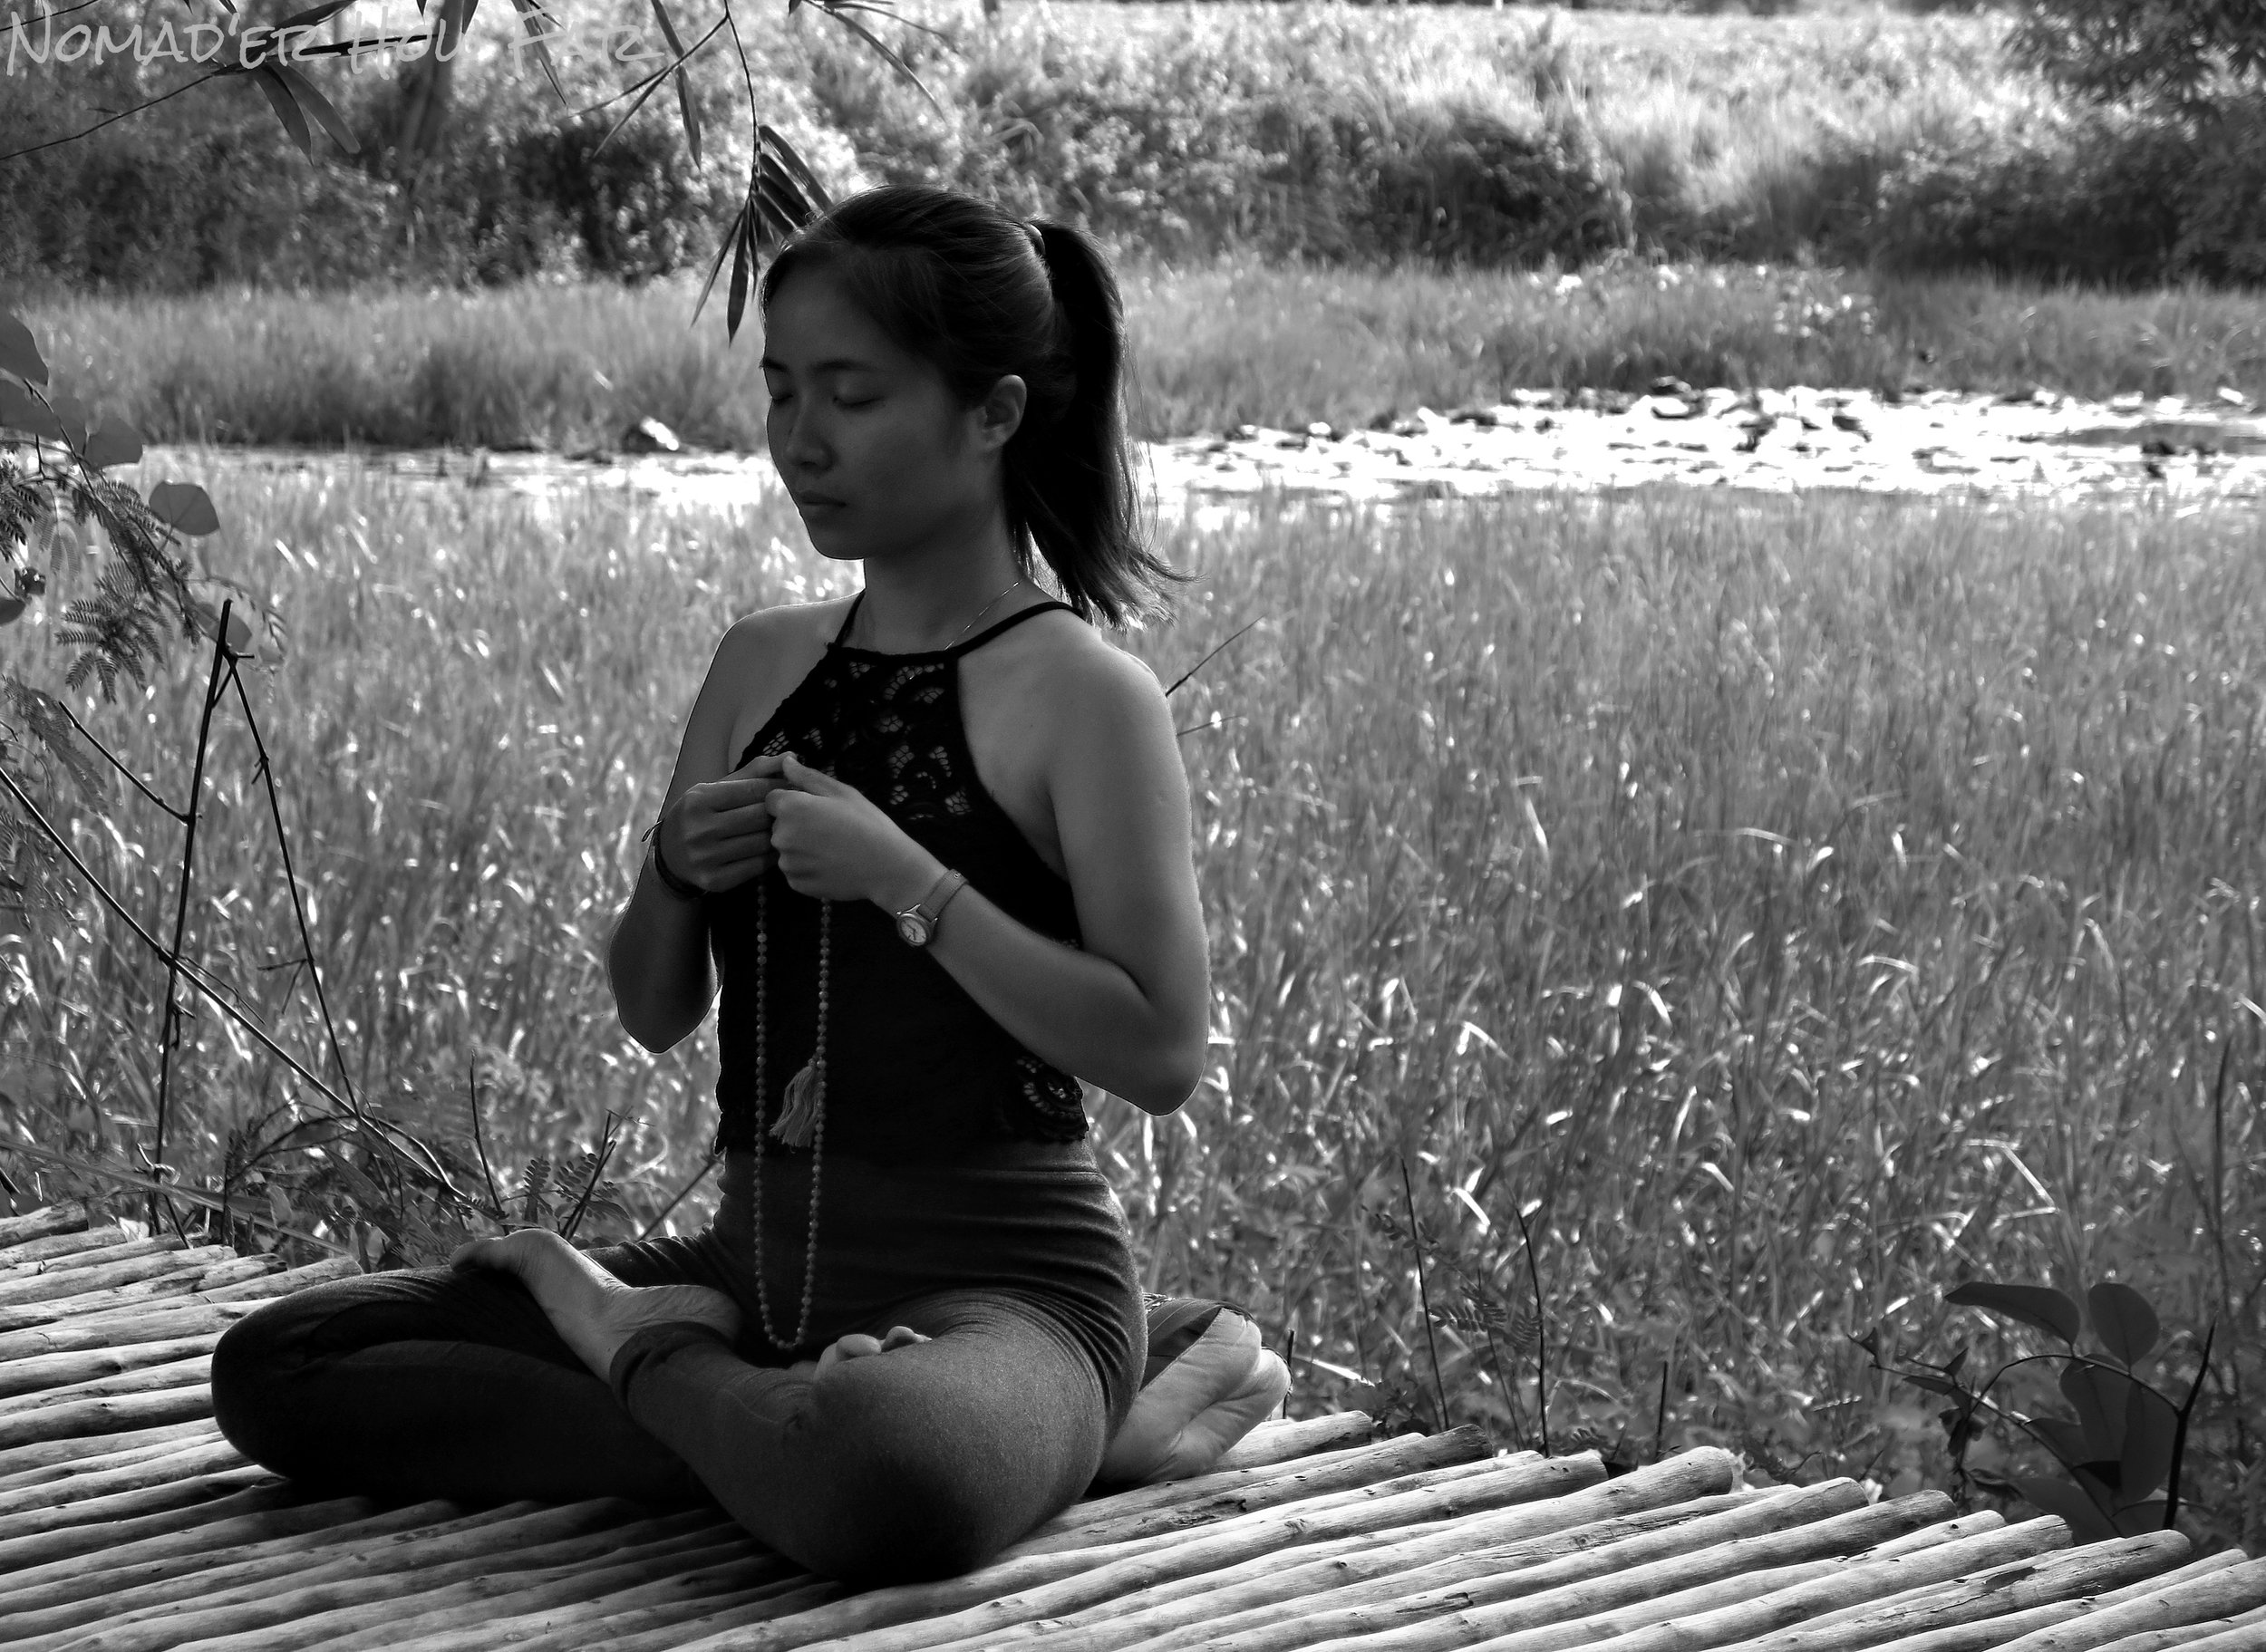 Meditation - The Mindfulness Project, Thailand